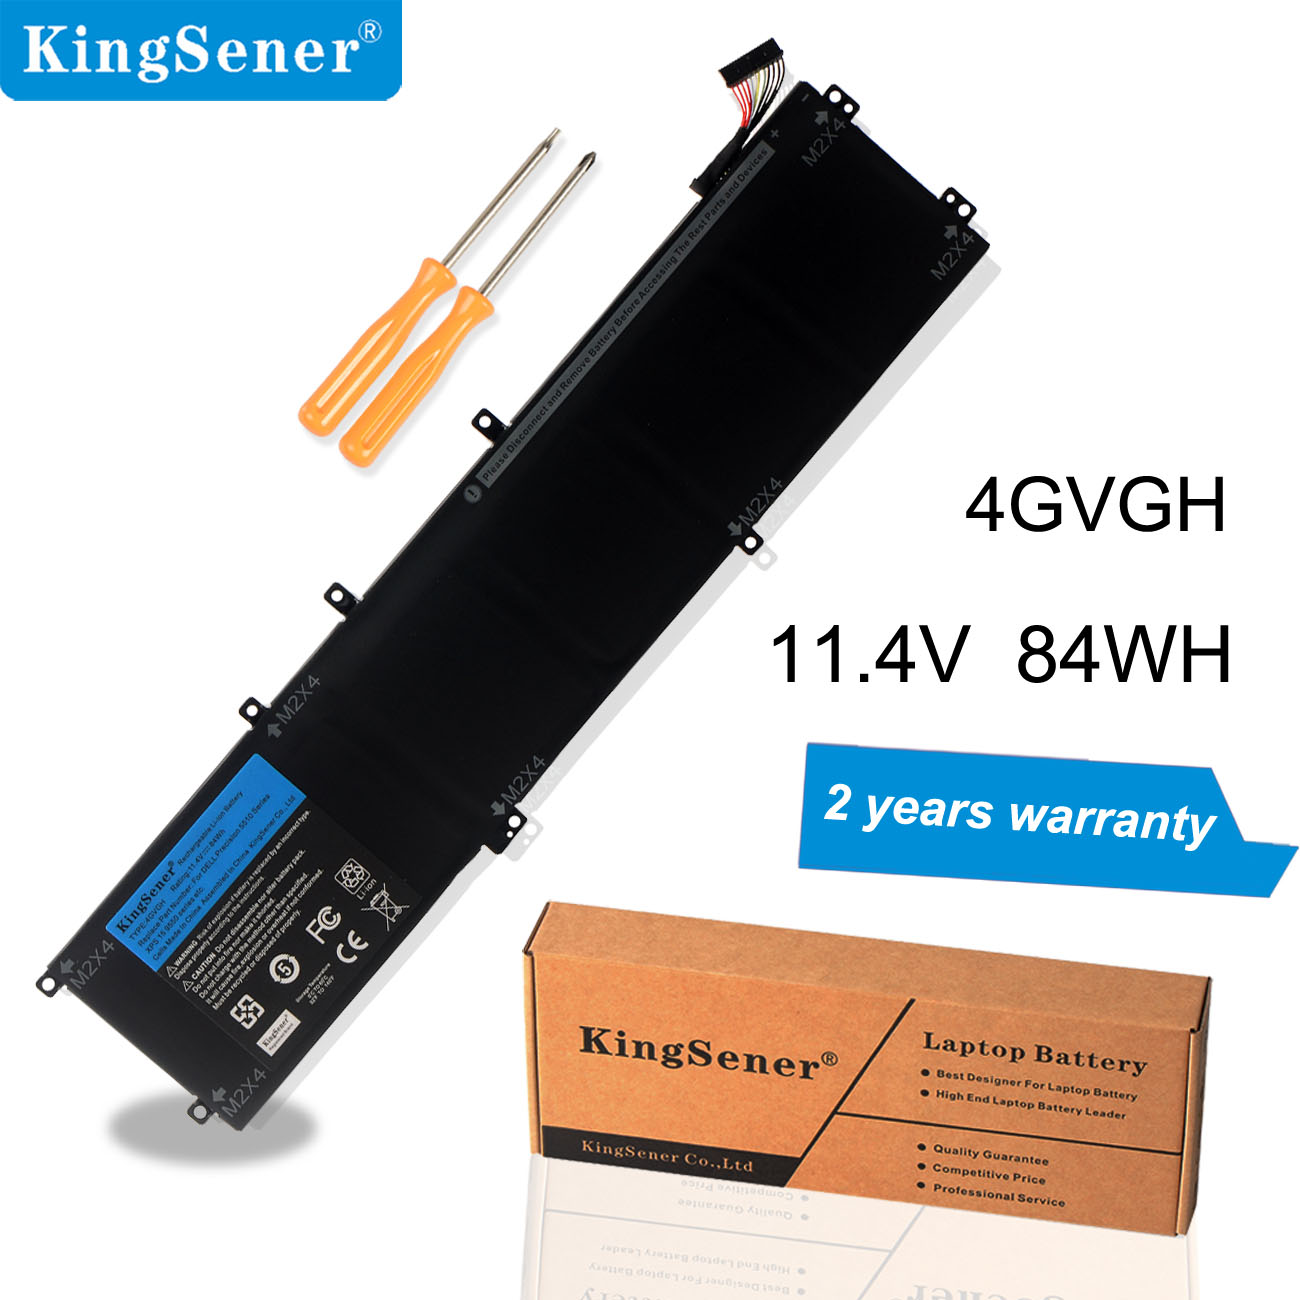 KingSener New 4GVGH Laptop Battery for DELL Precision 5510 XPS 15 9550 series 1P6KD T453X 11.4V 84WH image